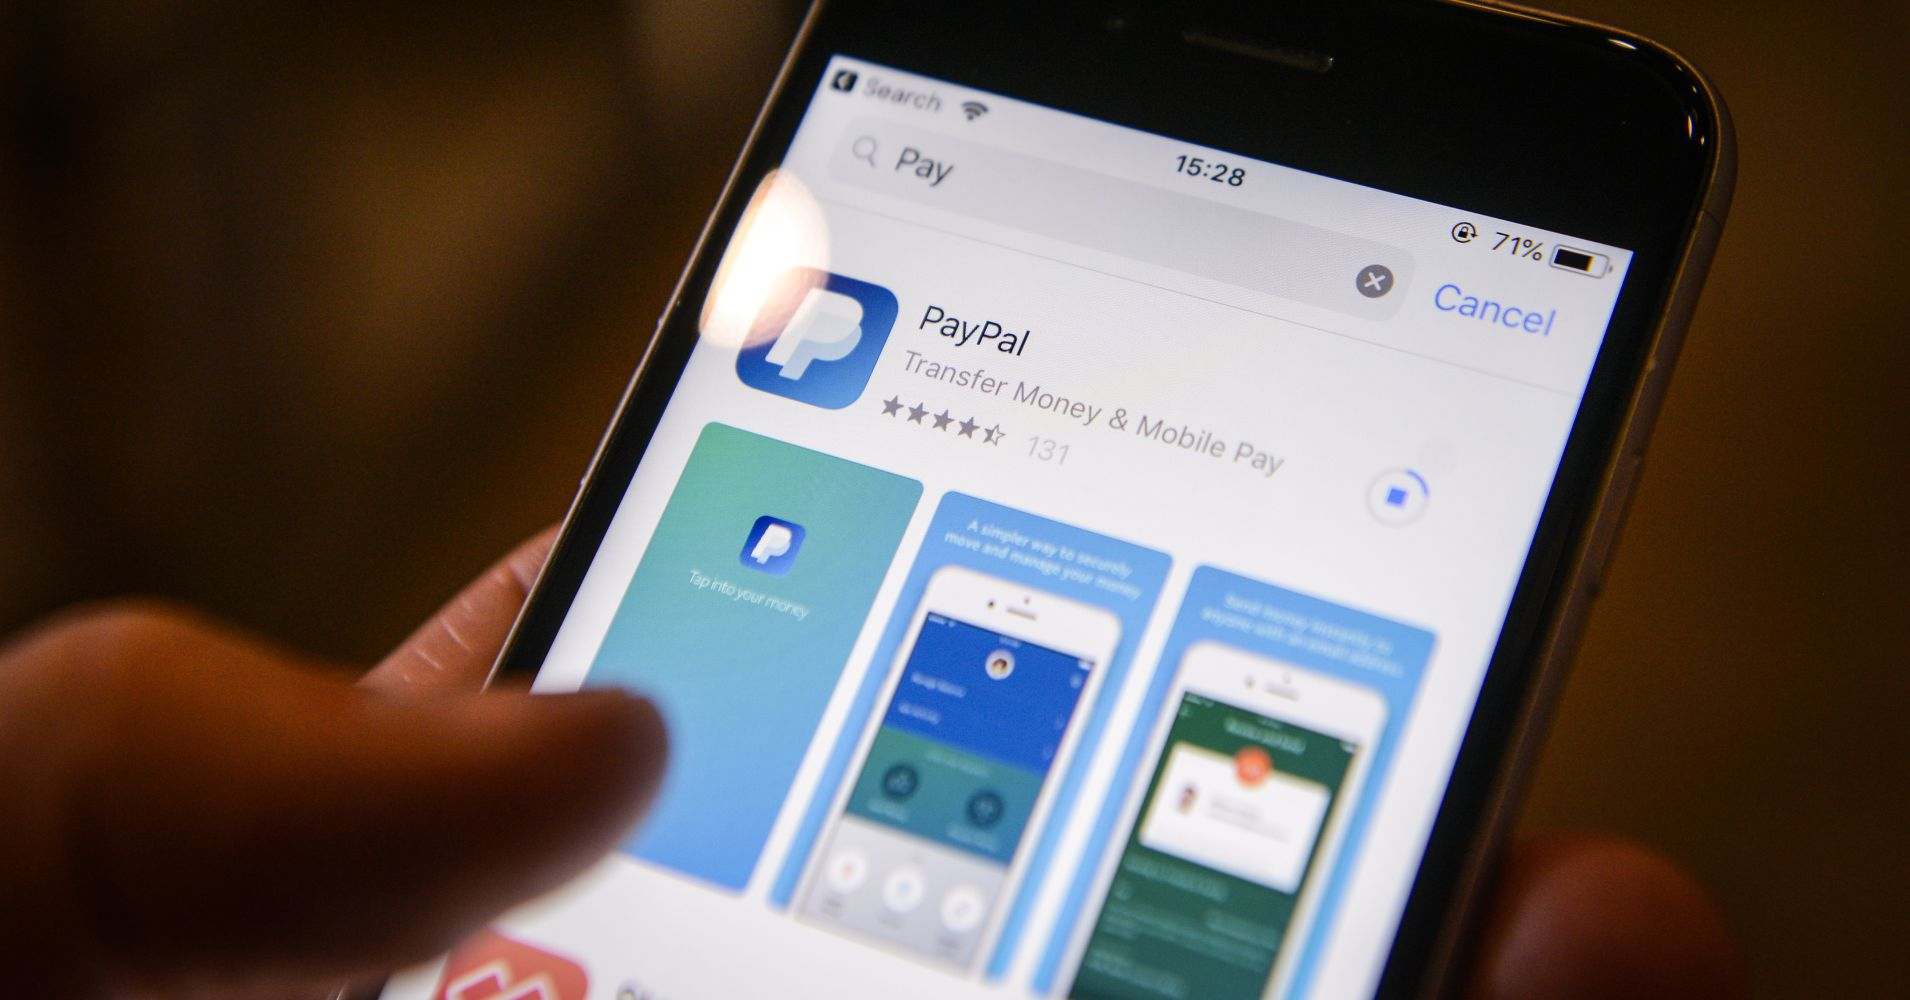 The PayPal application is seen on an iPhone